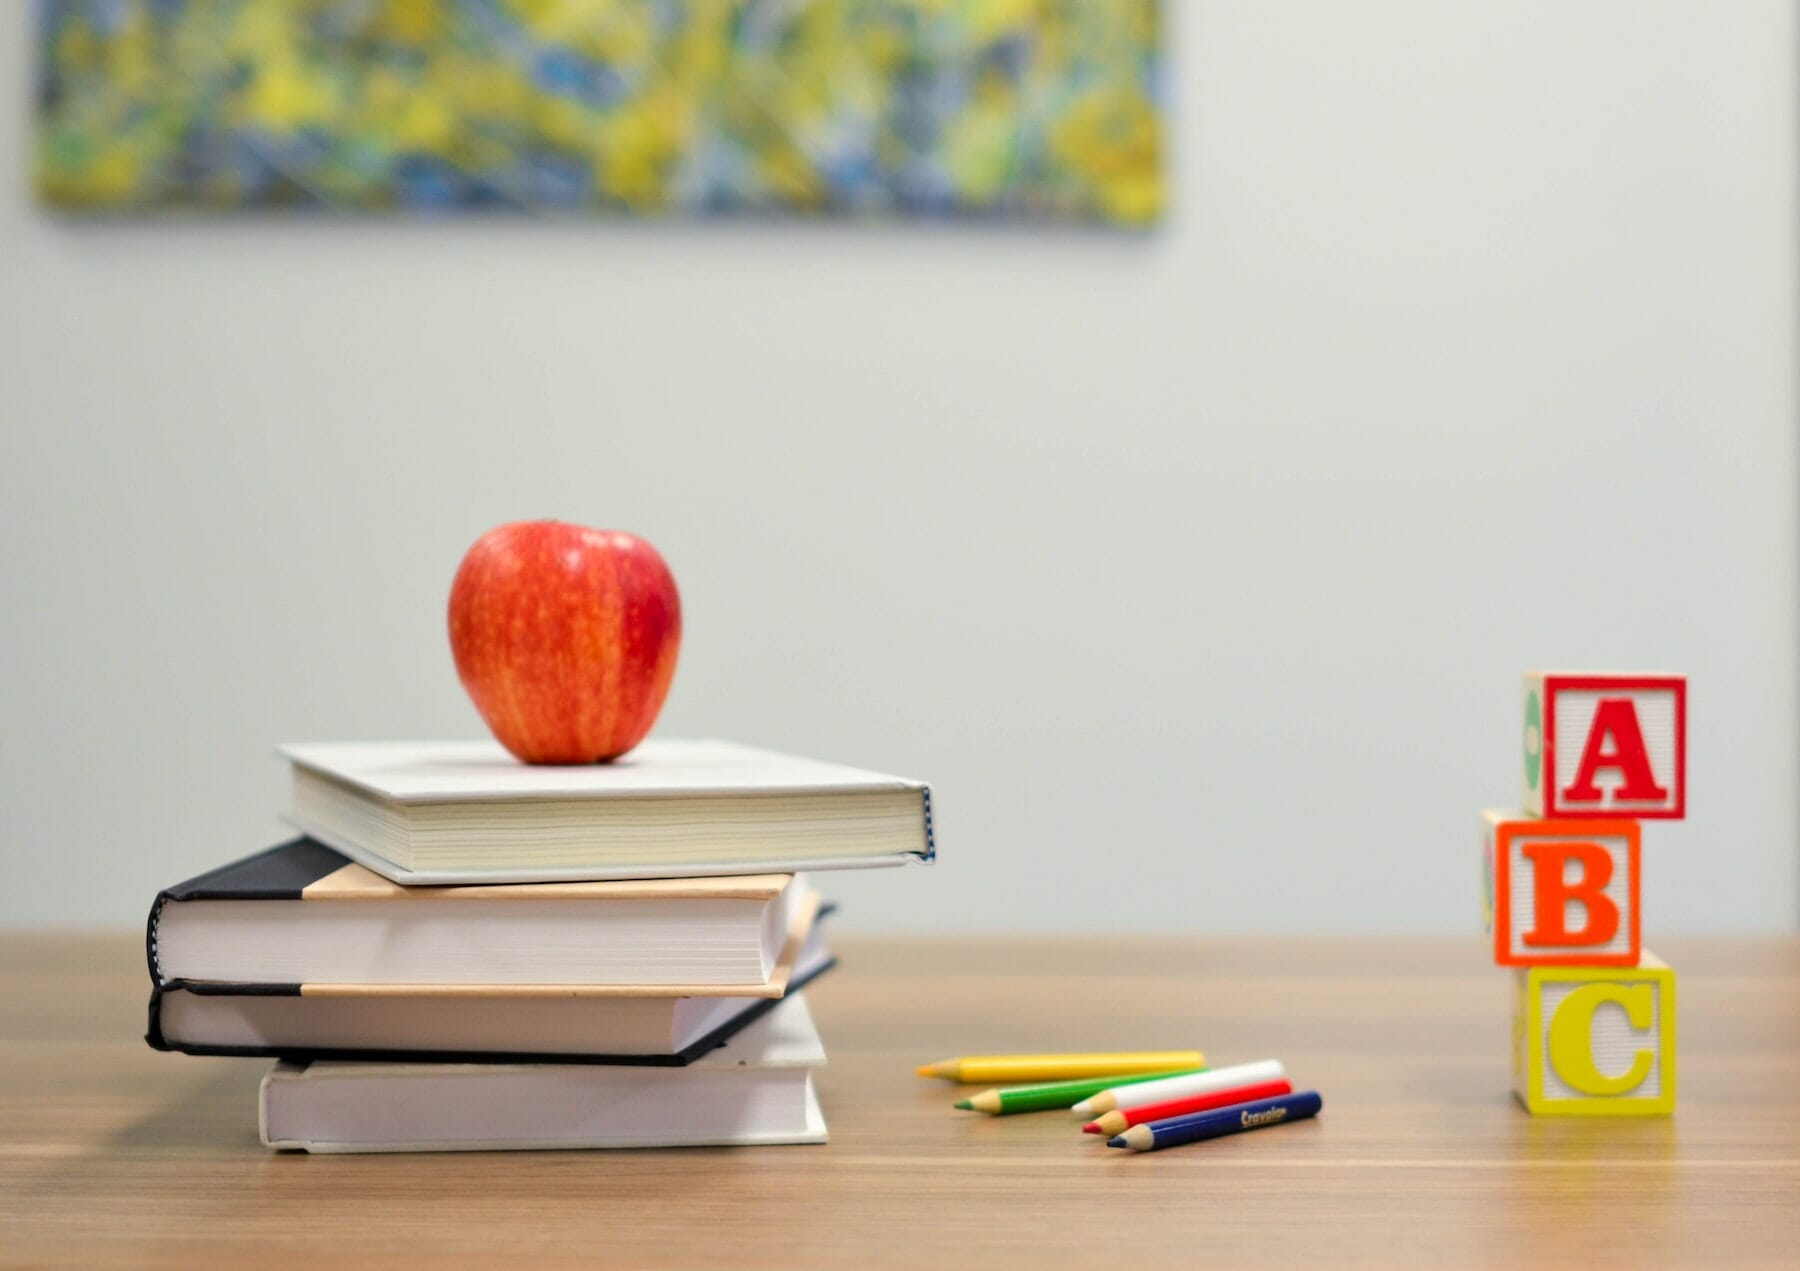 Apple resting on books beside coloring pencils and alphabet blocks